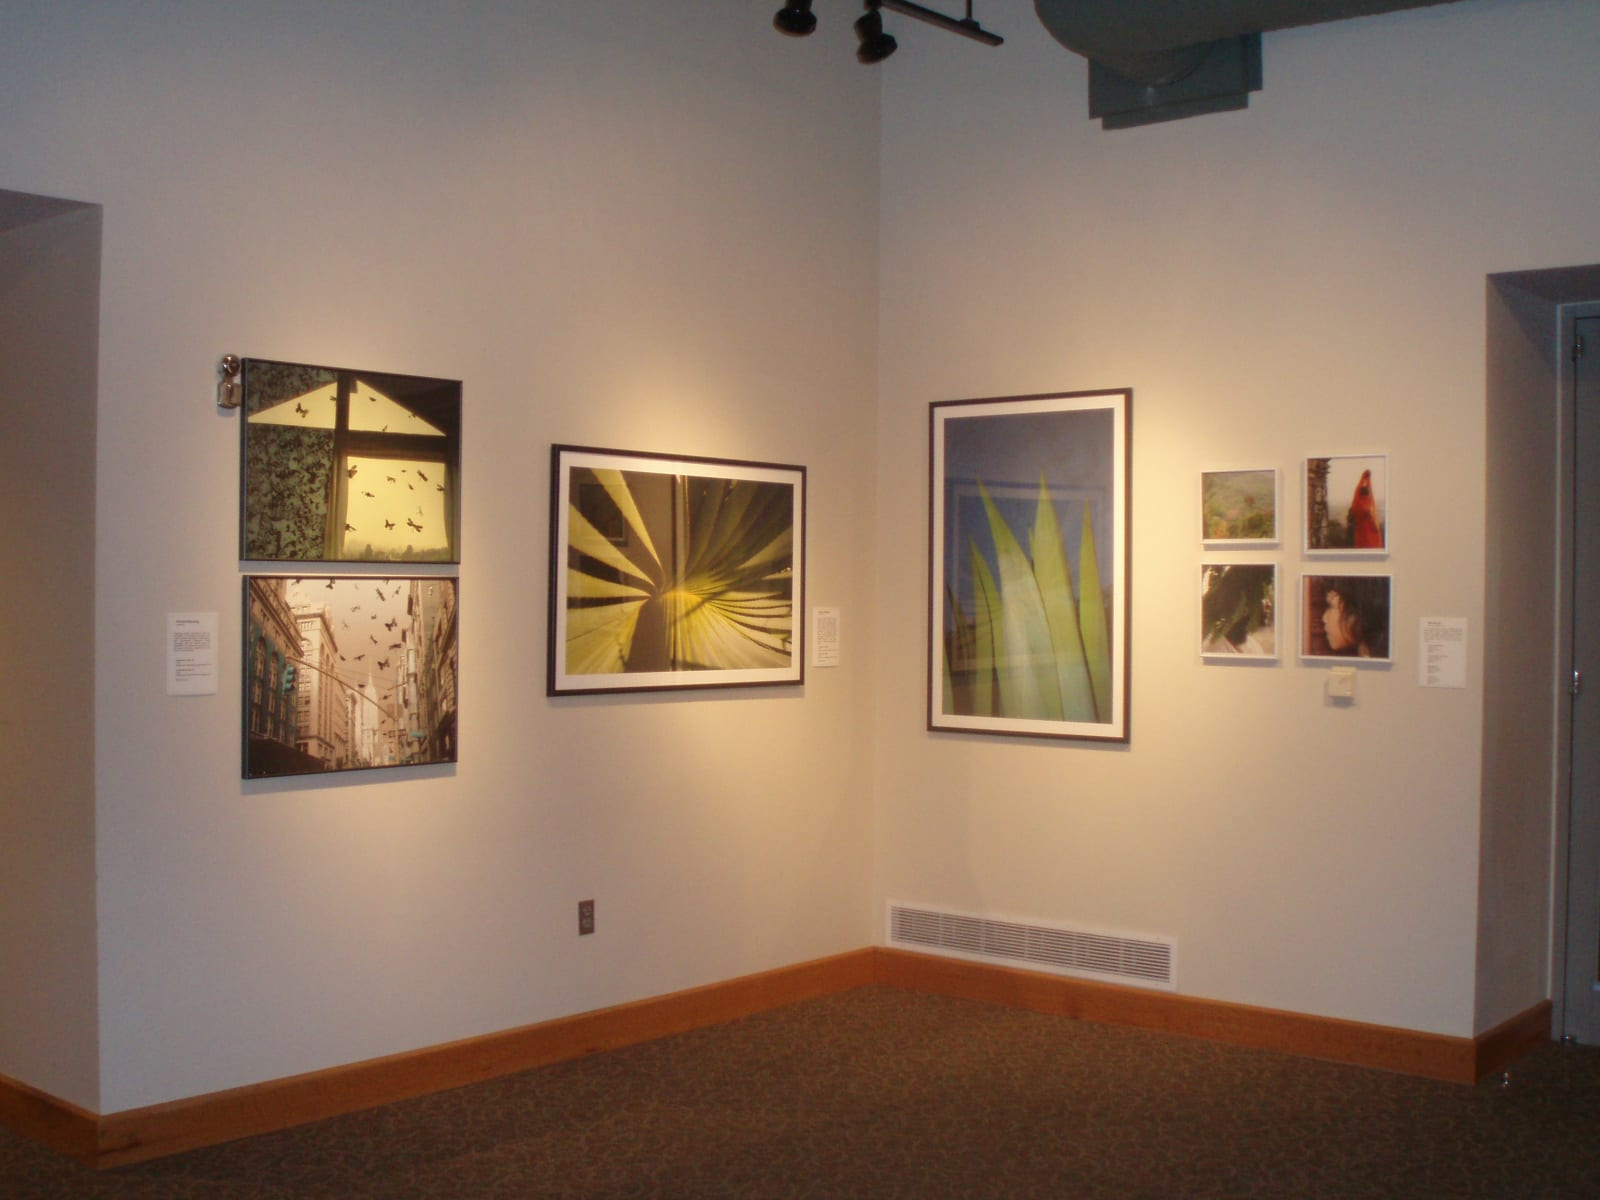 International Exposure: Looking at Contemporary Photography